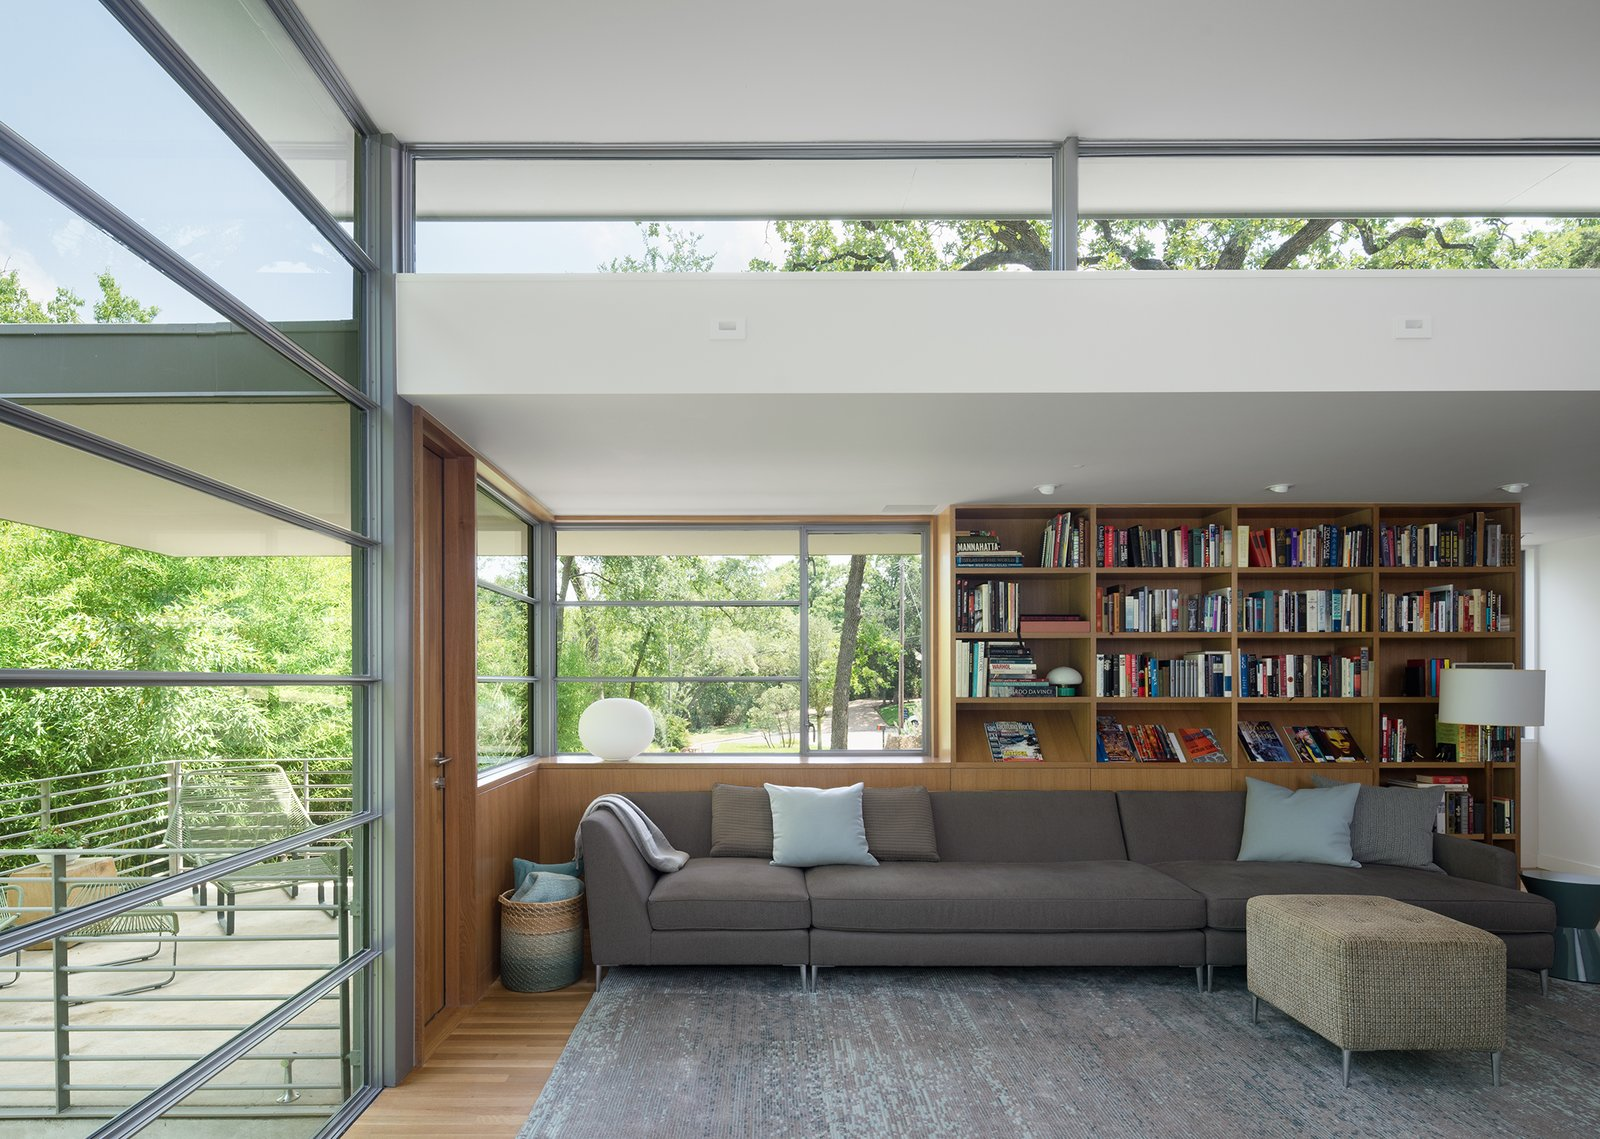 Living Room, Recessed Lighting, Ottomans, Light Hardwood Floor, and Sectional  Inwood Place by Tim Cuppett Architects